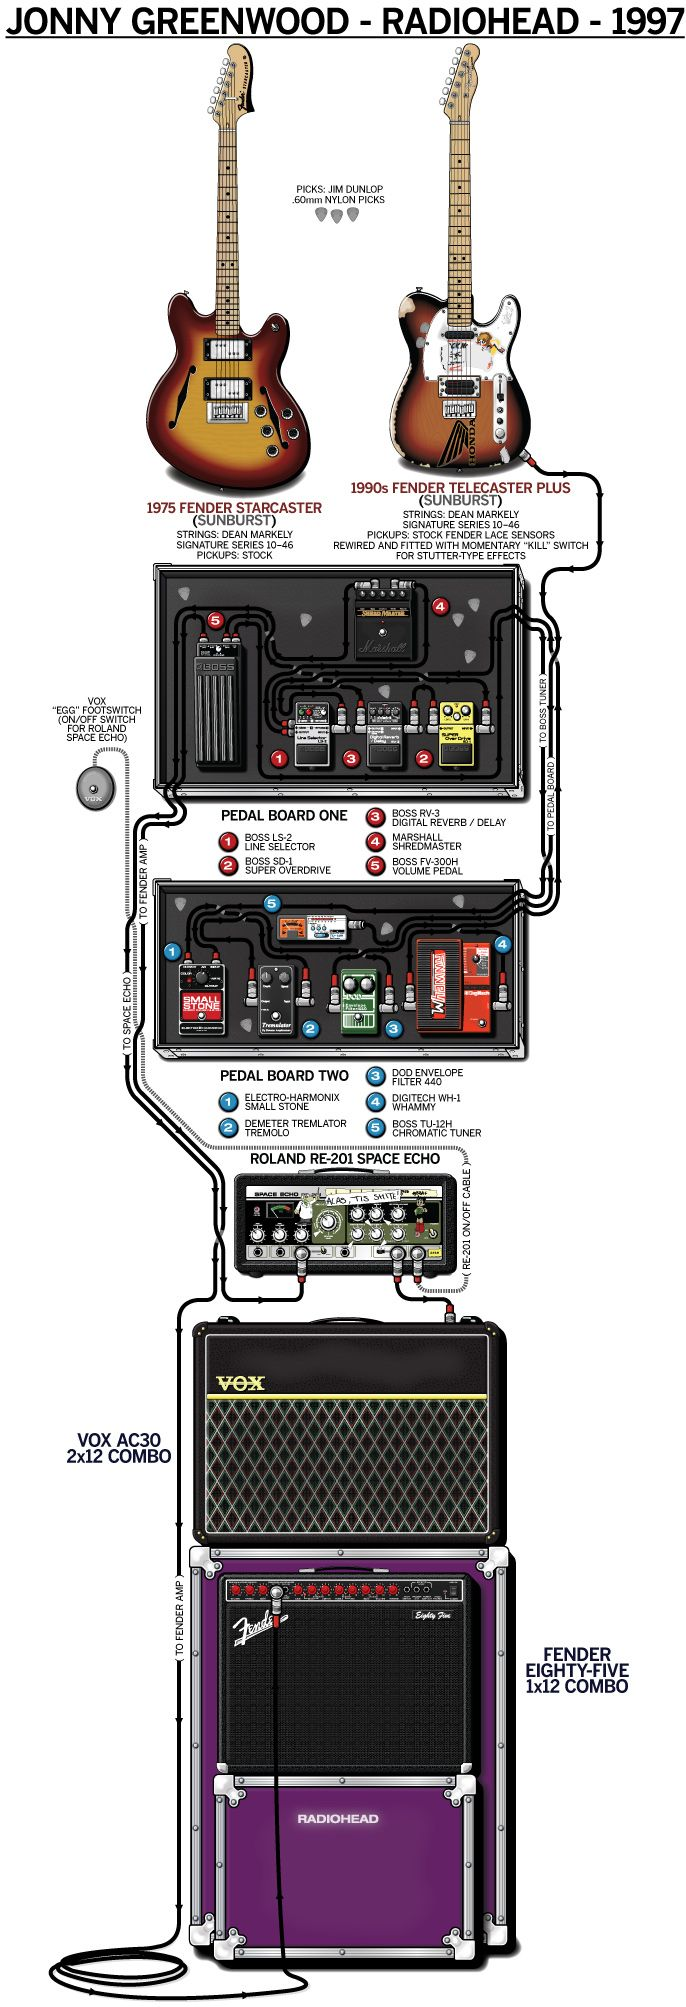 231c032cf720d94e4bbe4a68bf9c191a radiohead poster jonny greenwood 205 best pedalboard amps images on pinterest guitars, guitar pedalboard wiring diagram at nearapp.co